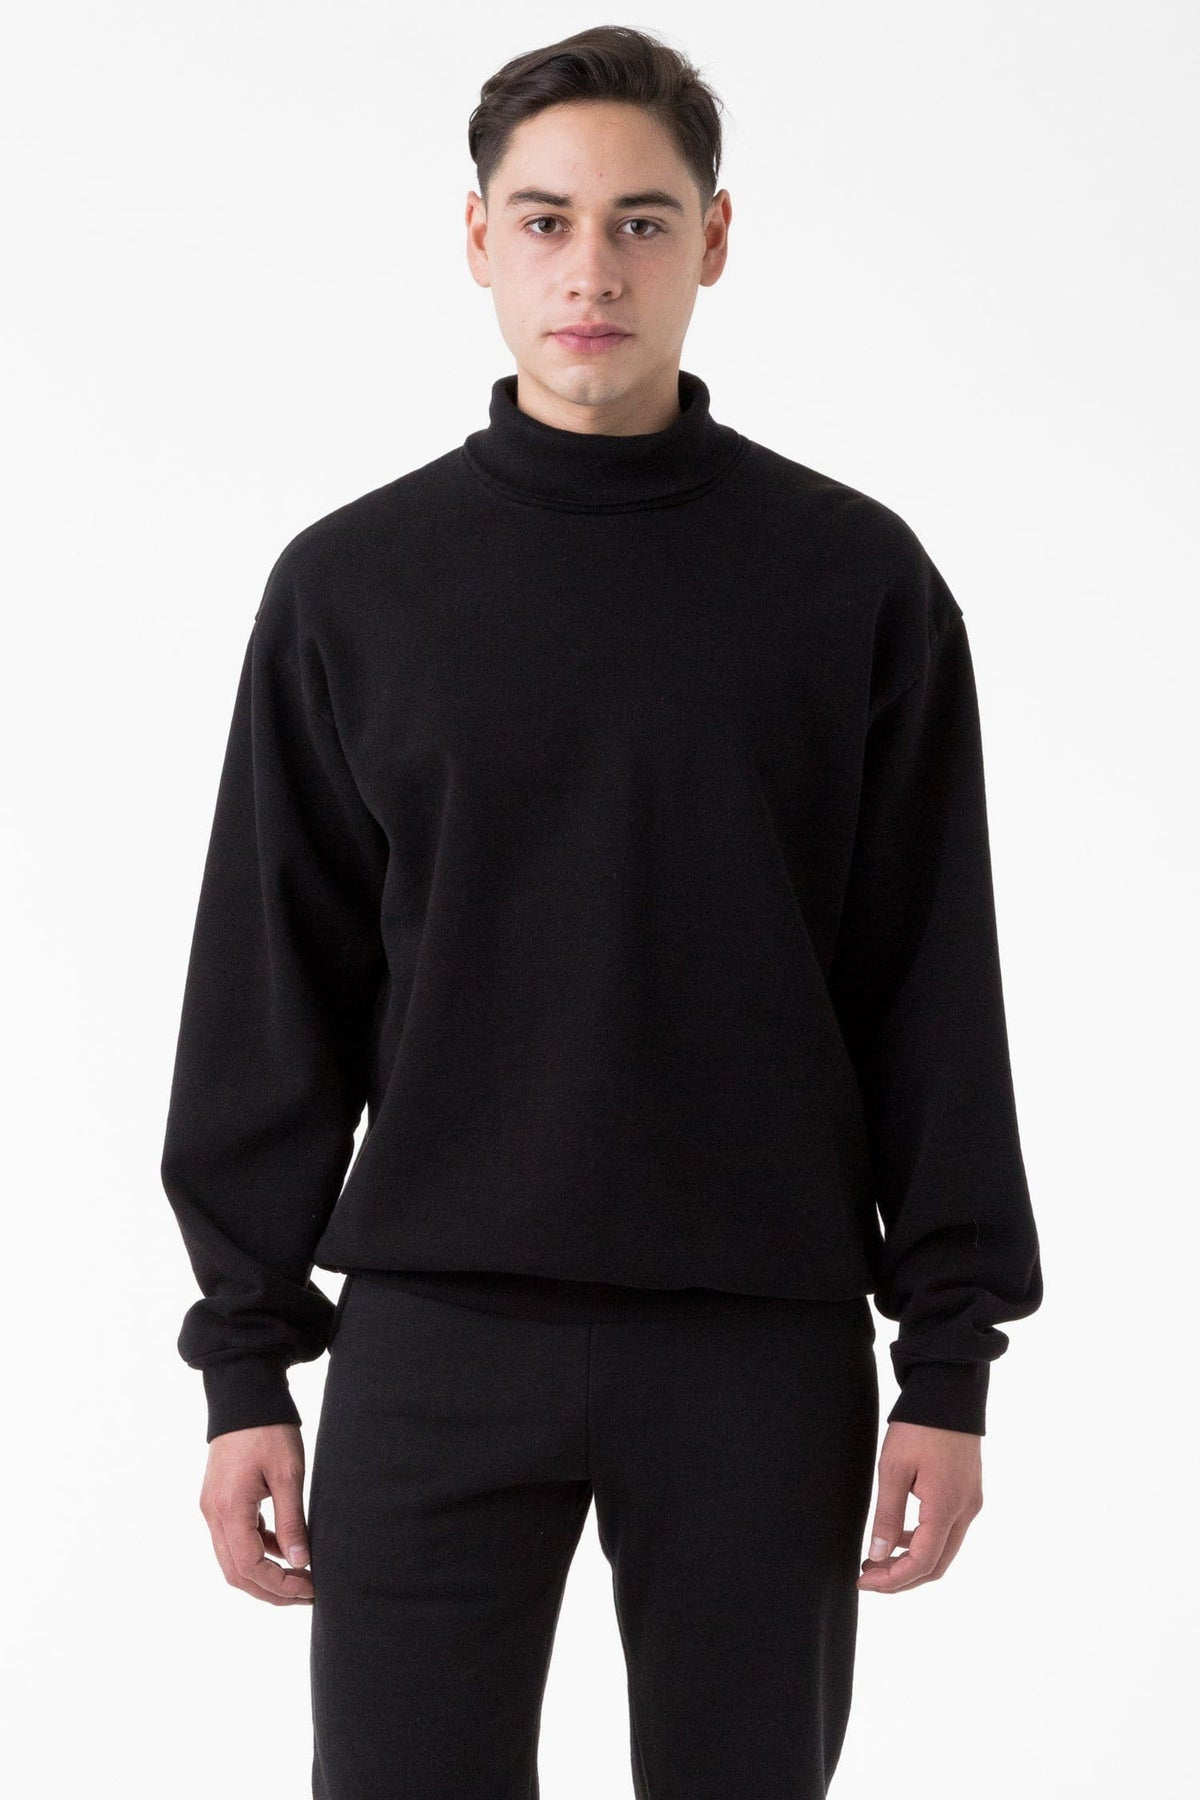 HF13GD - 14 oz Heavy Fleece Turtleneck Sweatshirt